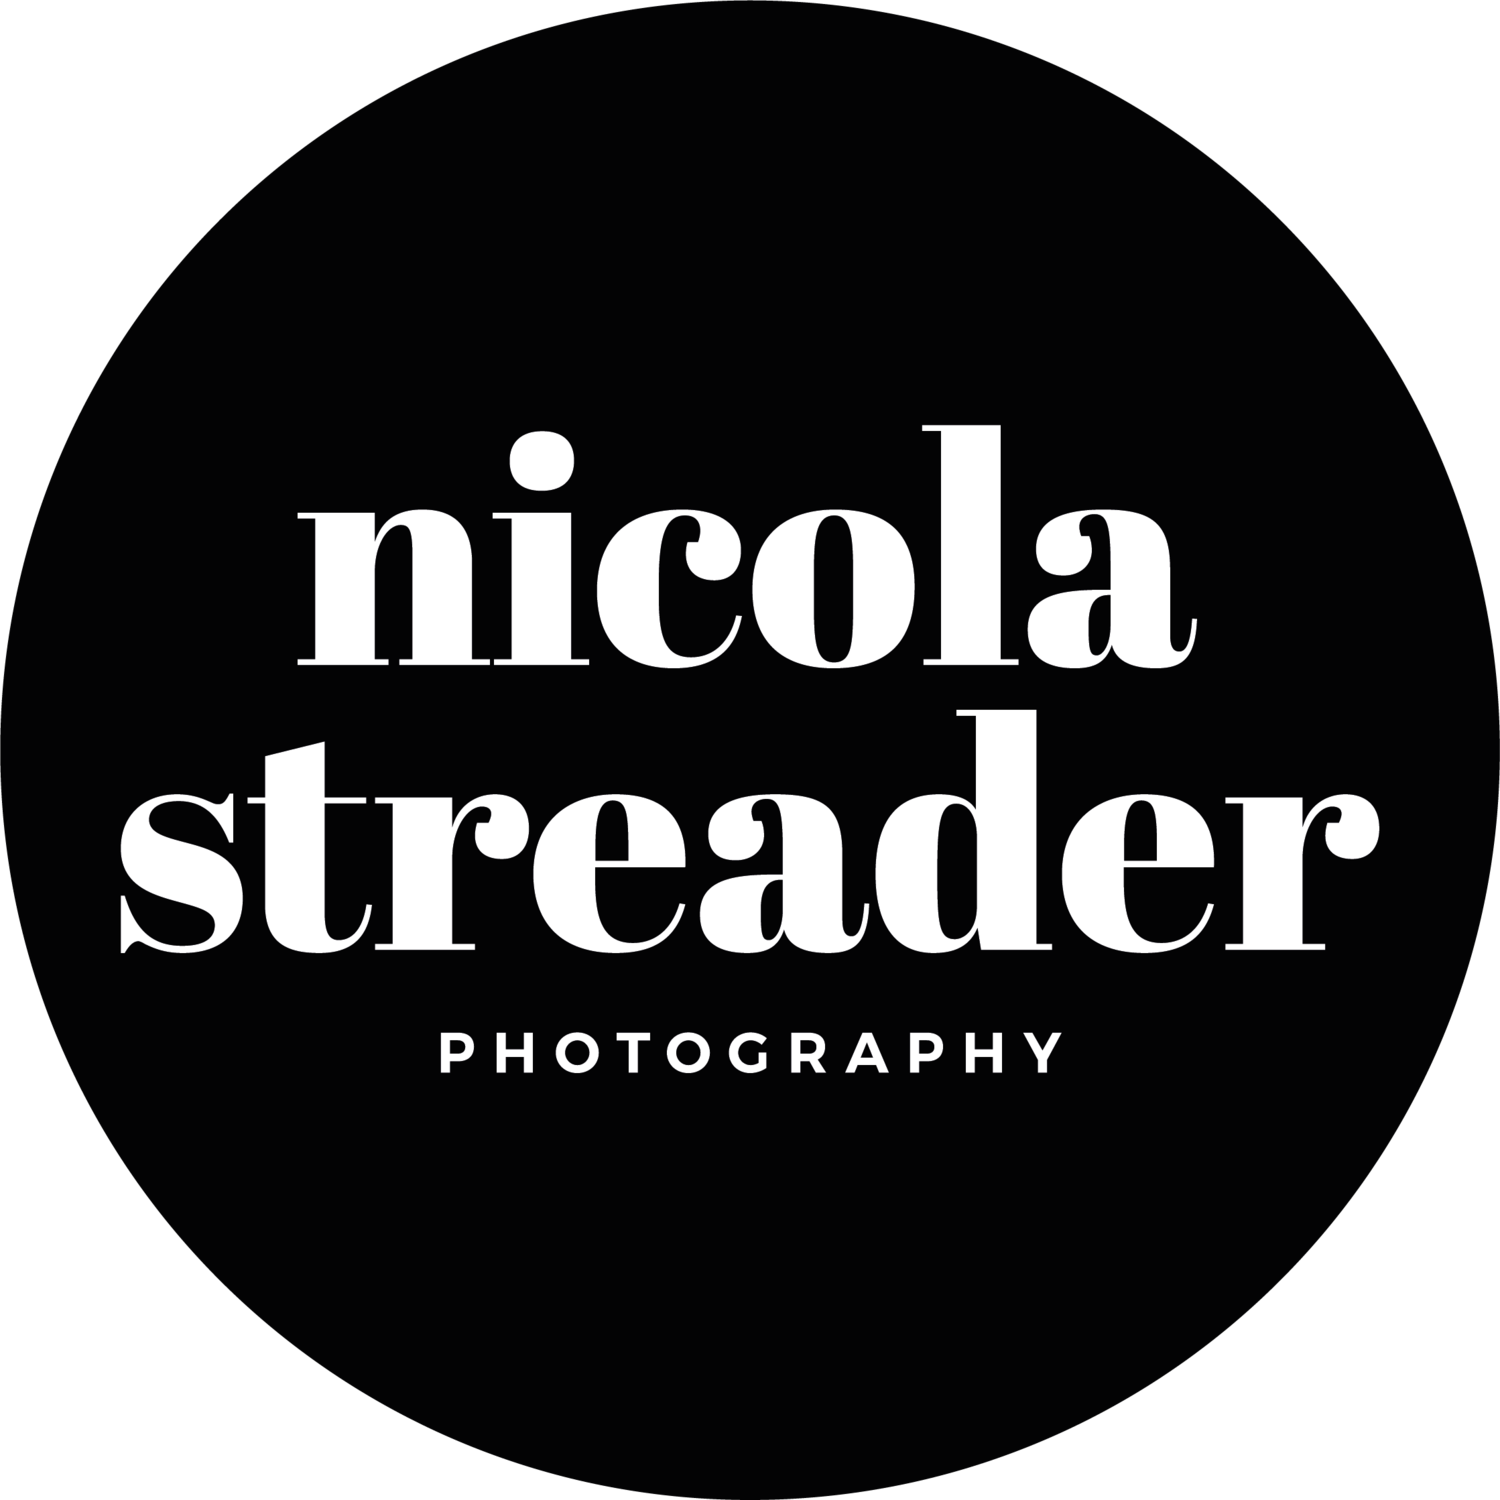 Nicola Streader Photography